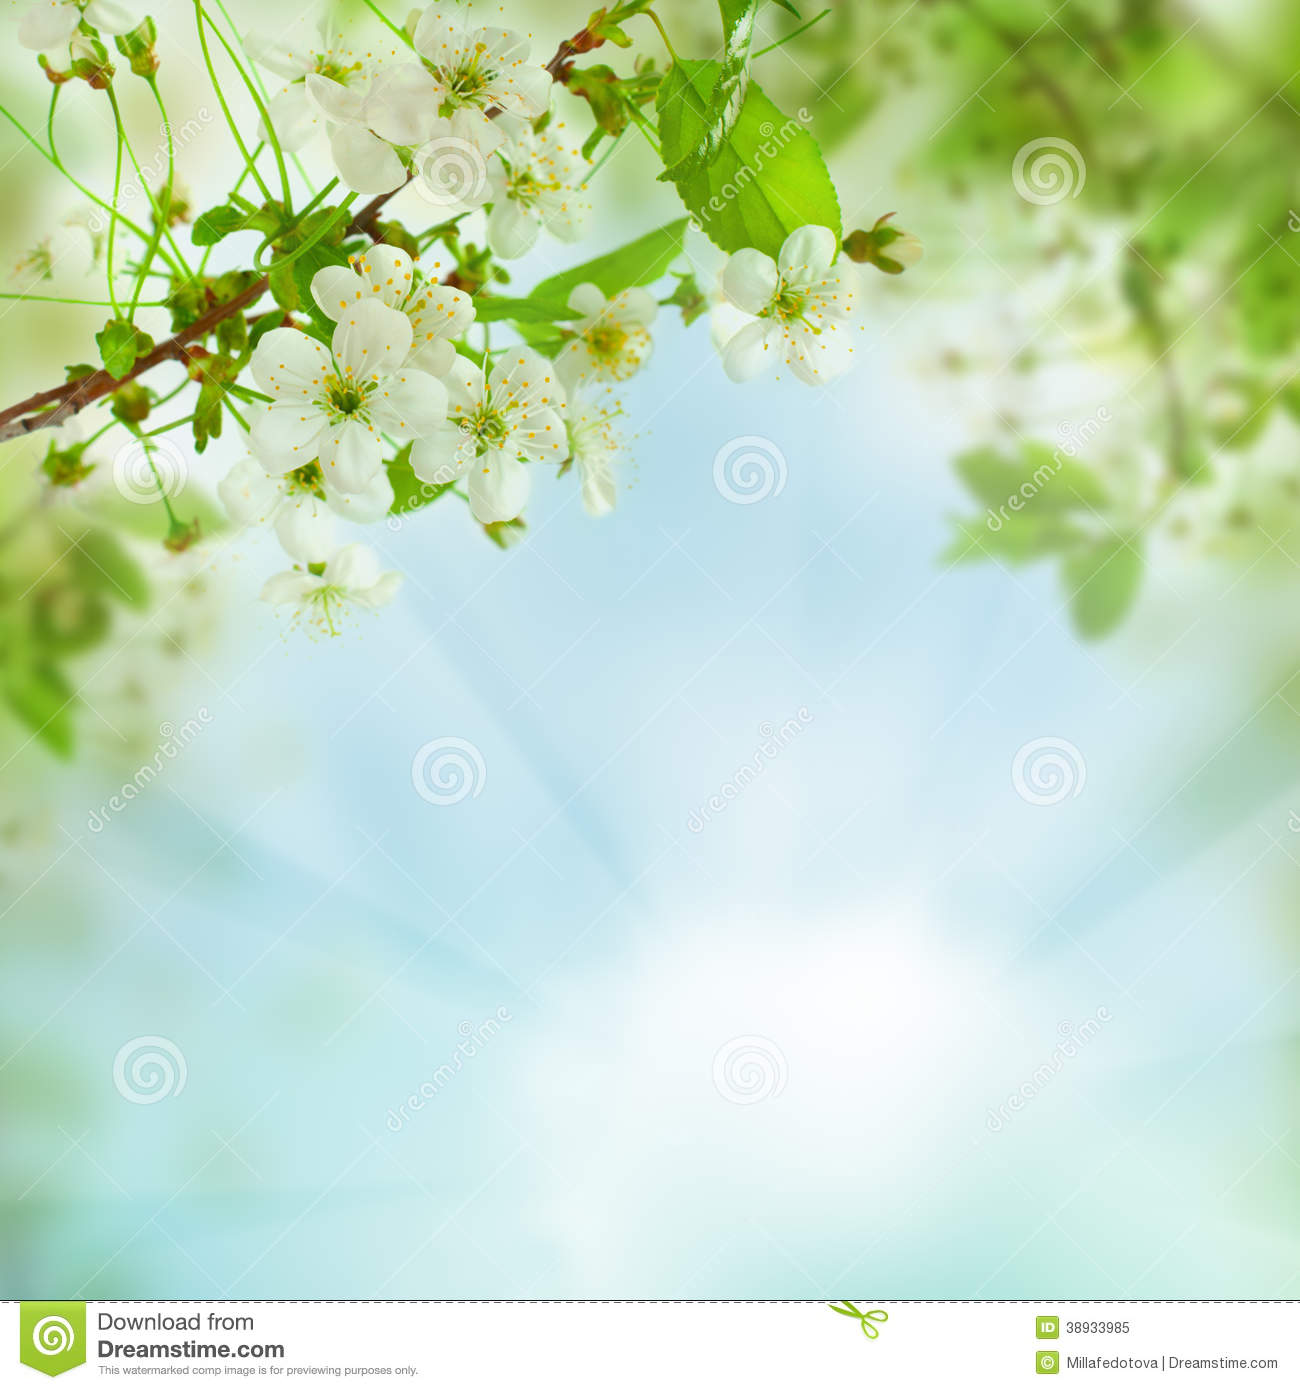 Spring Floral Background Abstract Nature Concept Stock